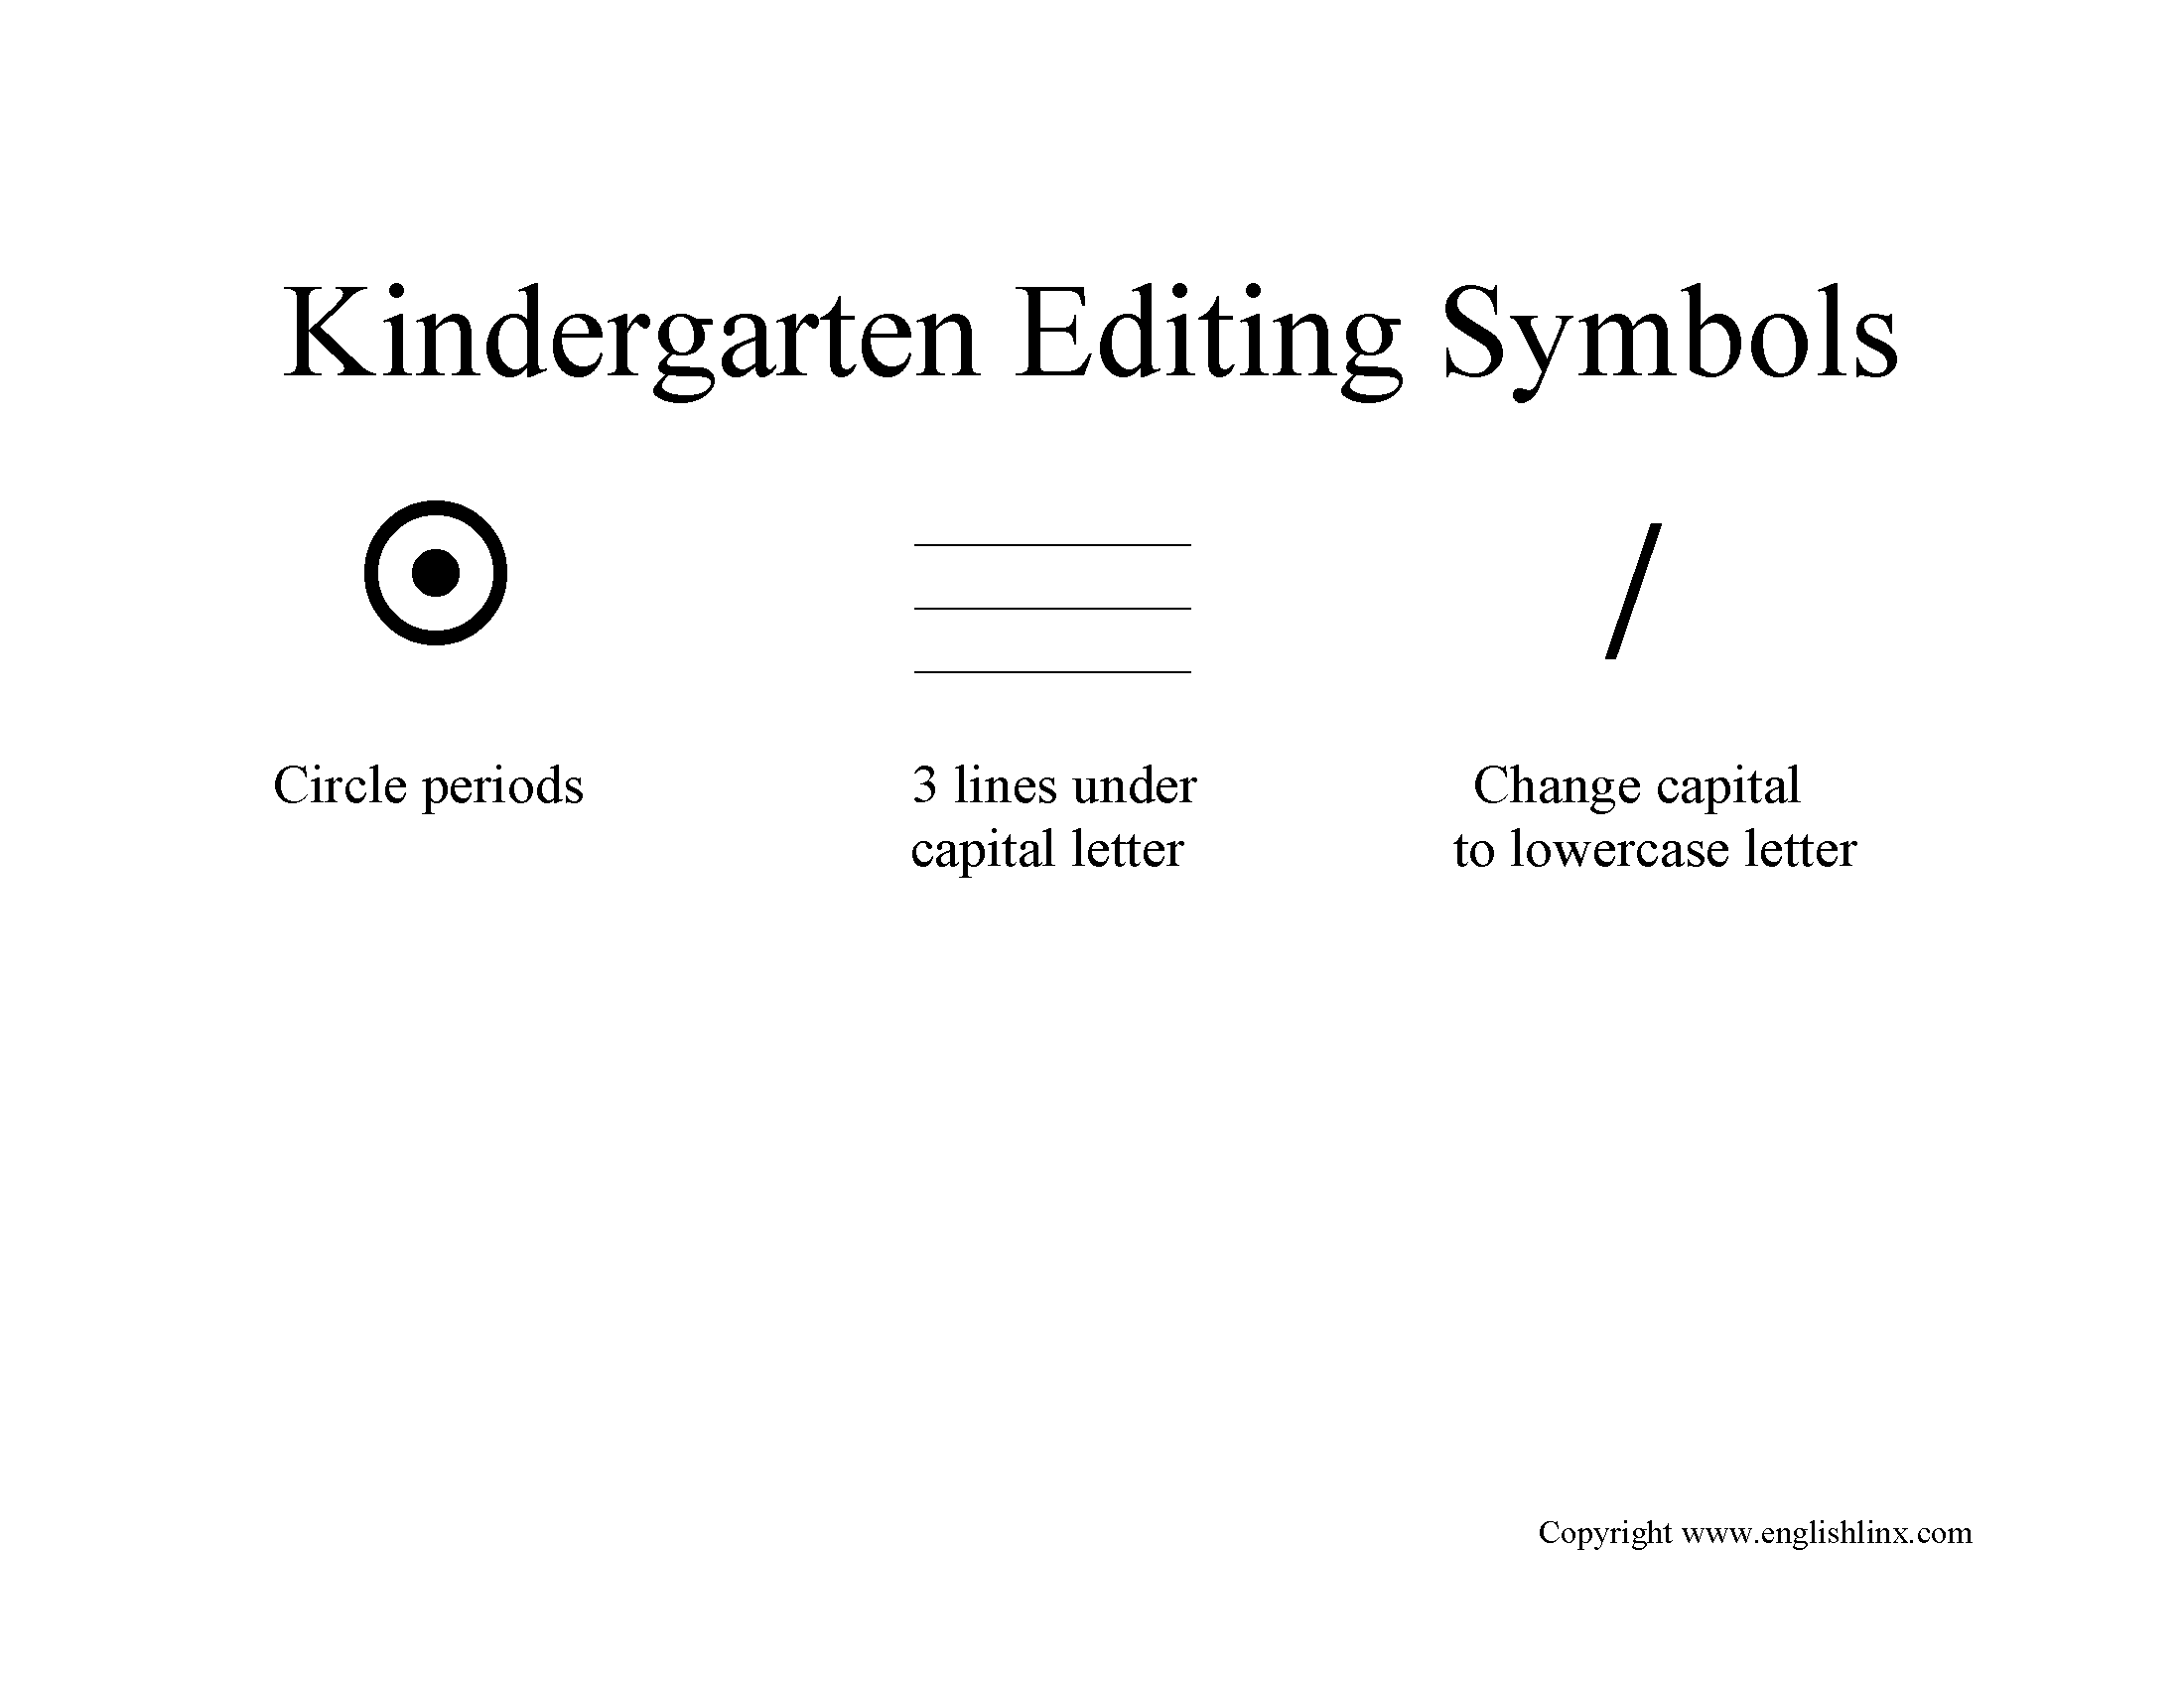 K 5 Editing Symbols Worksheet